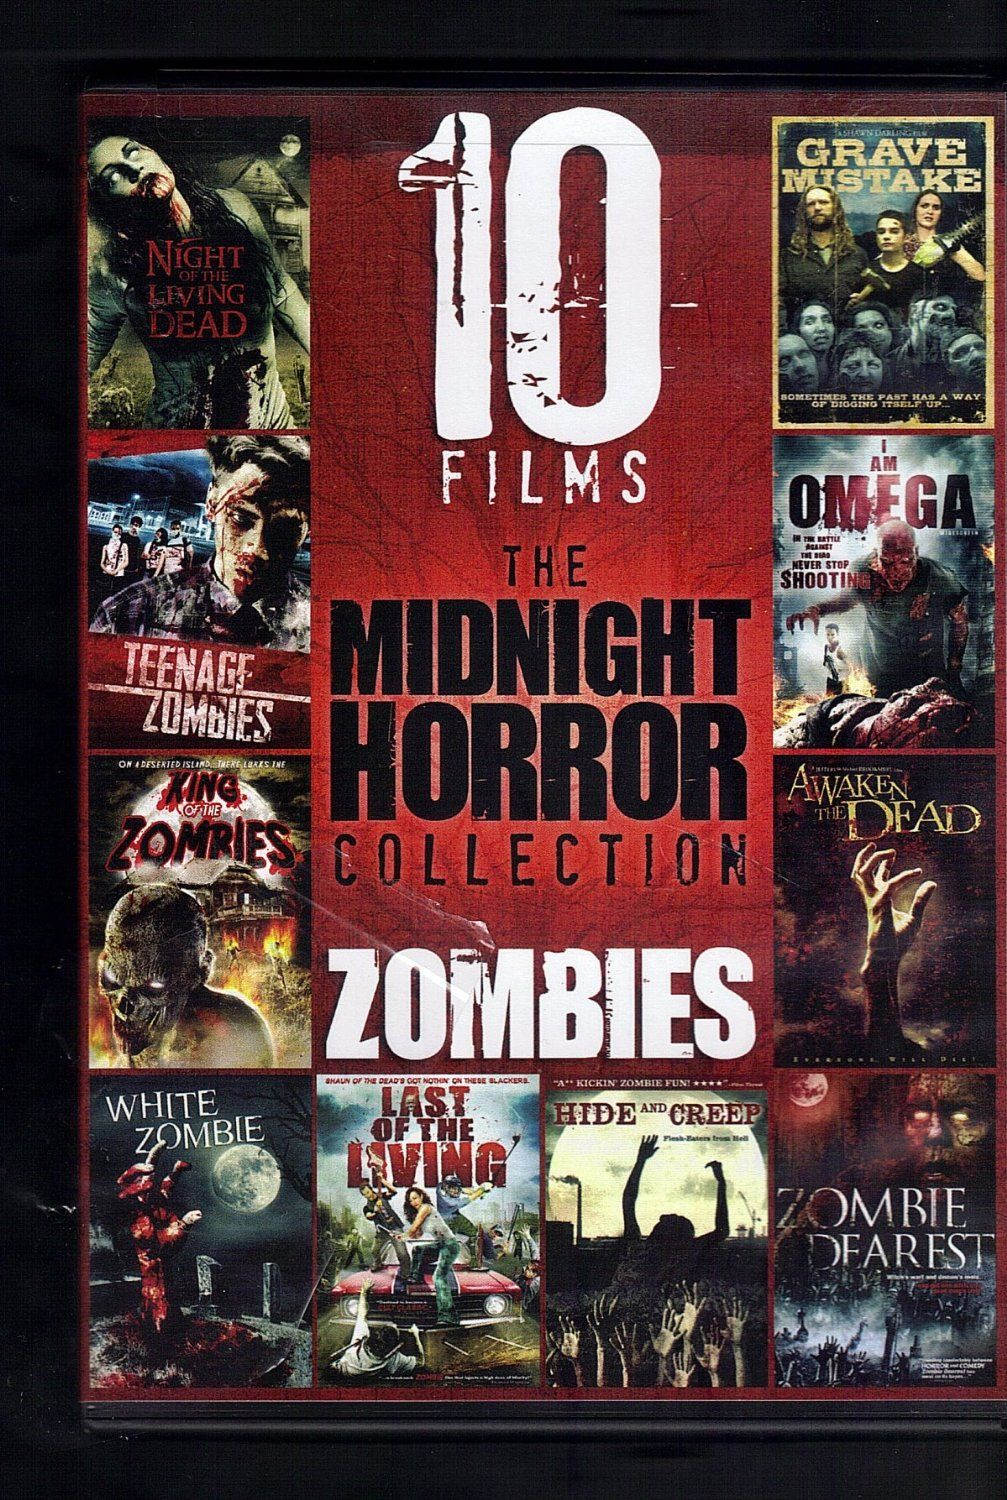 The Best Zombie Movies Ever Made The best zombie movies